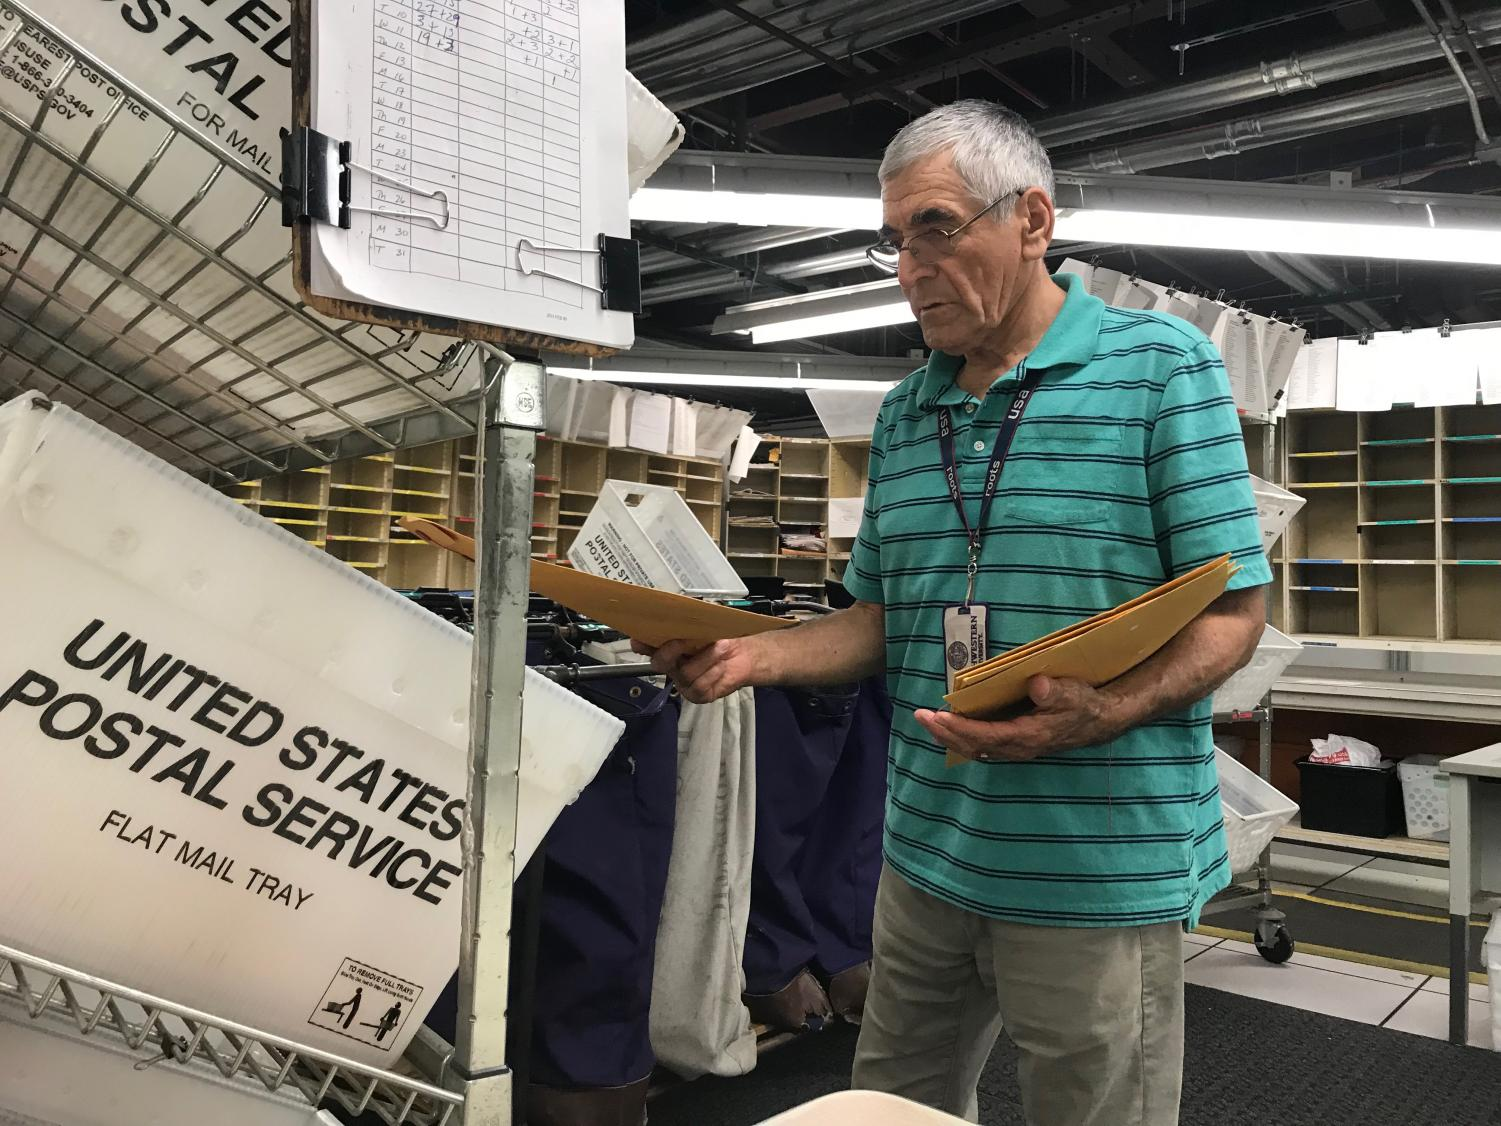 Driver Elvis Acuna sorts a batch of mail in the Northwestern mailroom. Acuna has worked in the  mailroom for over 50 years.